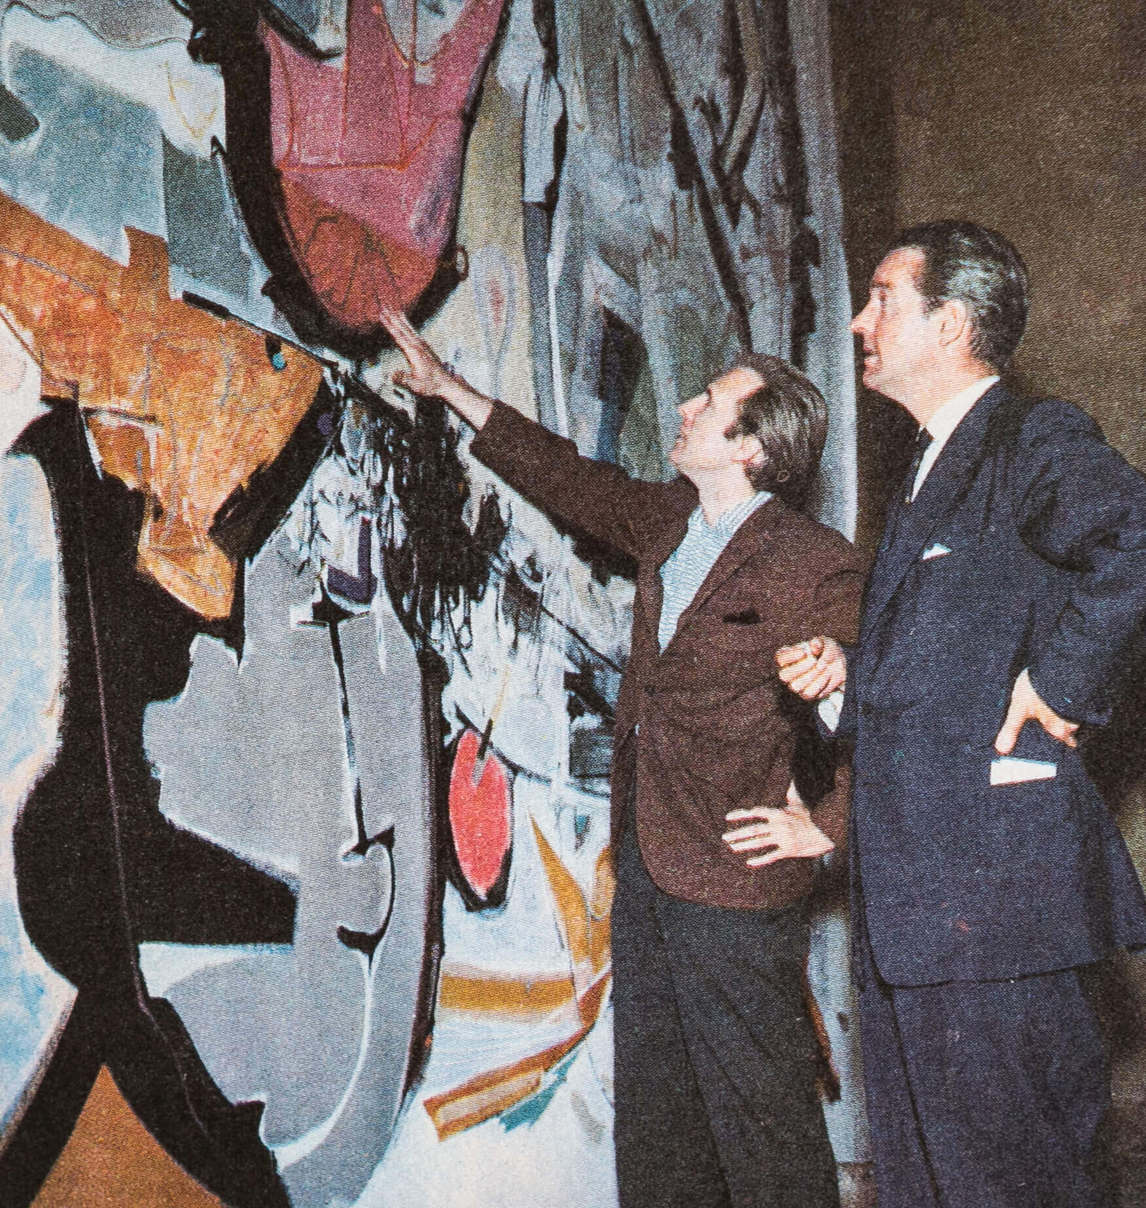 Art Canada Institute, Town in front of his monumental St. Lawrence Seaway mural, 1958